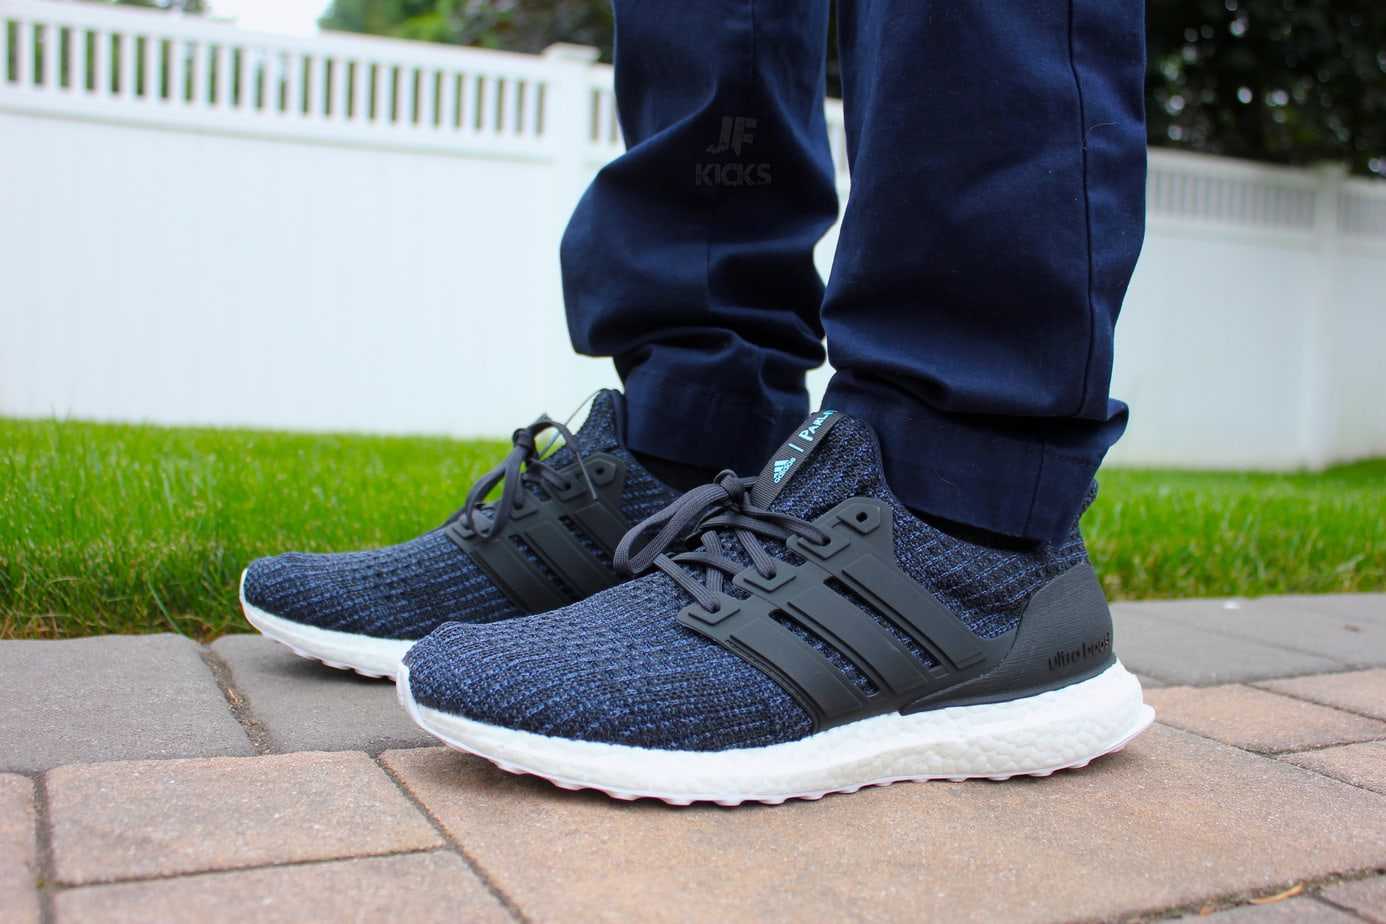 5330c9c7e ... core black navy blue white multi cp9250 f66q3220 0a8c8 18cf2  promo  code for parley x adidas ultra boost deep ocean color legend ink carbon  blue spirit